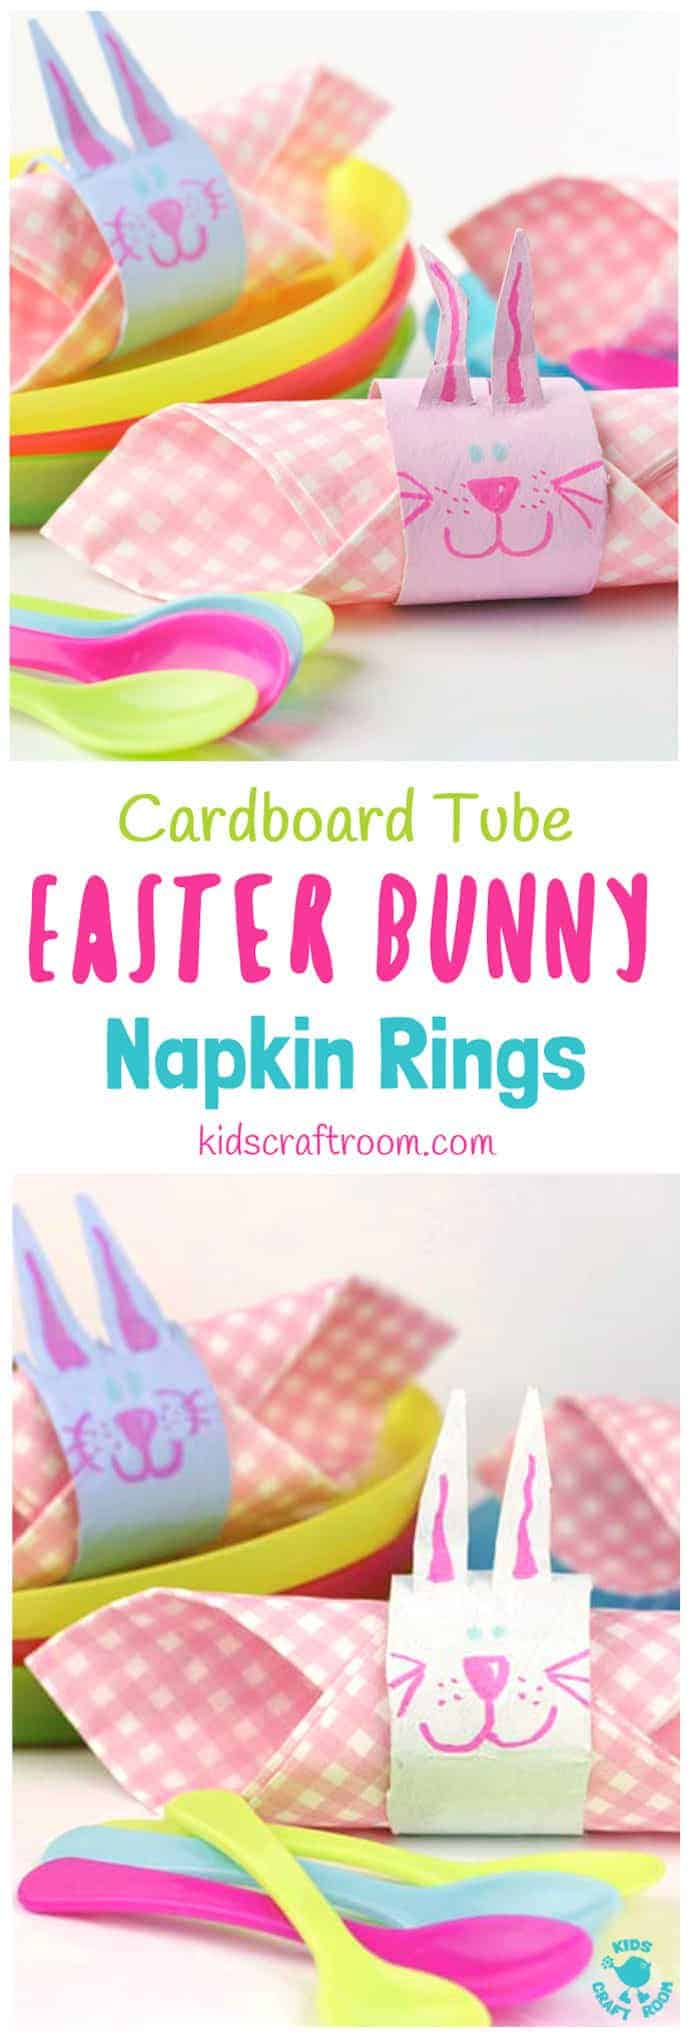 EASTER BUNNY RABBIT NAPKIN RINGS - a fun recycled Easter craft for kids. A cute rabbit craft from cardboard tubes / TP rolls. #easter #eastercrafts #kidscrafts #craftsforkids #kidscraftroom #bunny #bunnies #easterbunny #rabbits #tprollcrafts #cardboardtubecrafts #rabbitcrafts #bunnycrafts #napkin #napkinrings